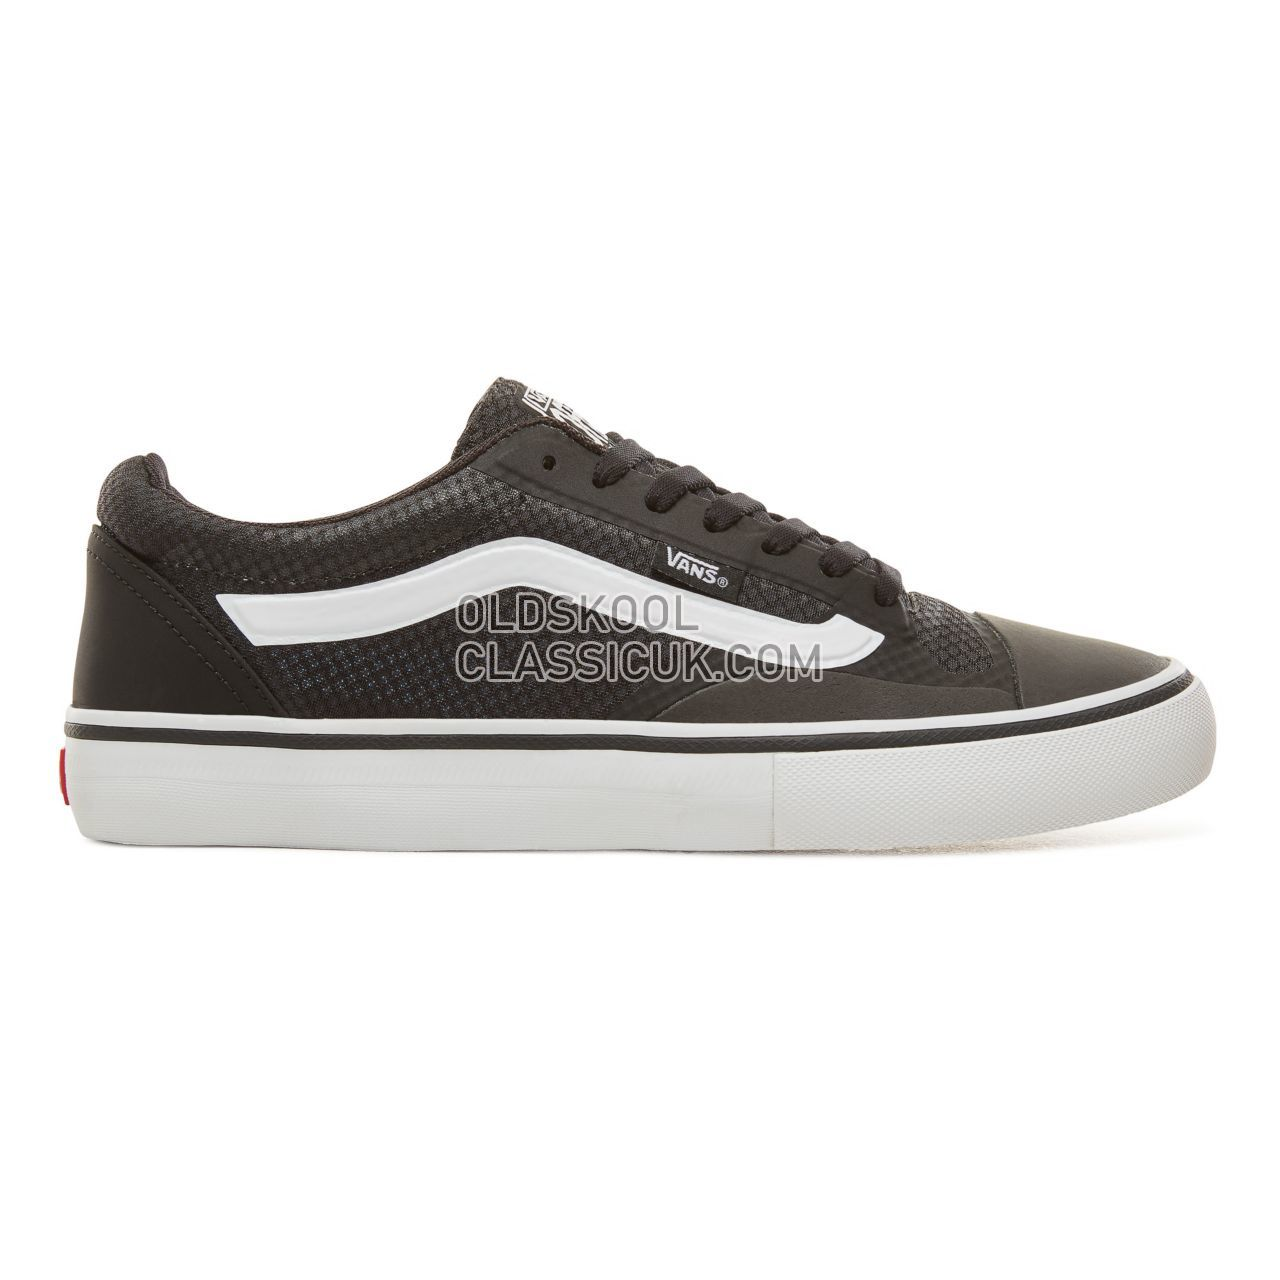 Vans AVE Rapidweld Pro Lite Sneakers Mens Black/White VA3TJWY28 Shoes